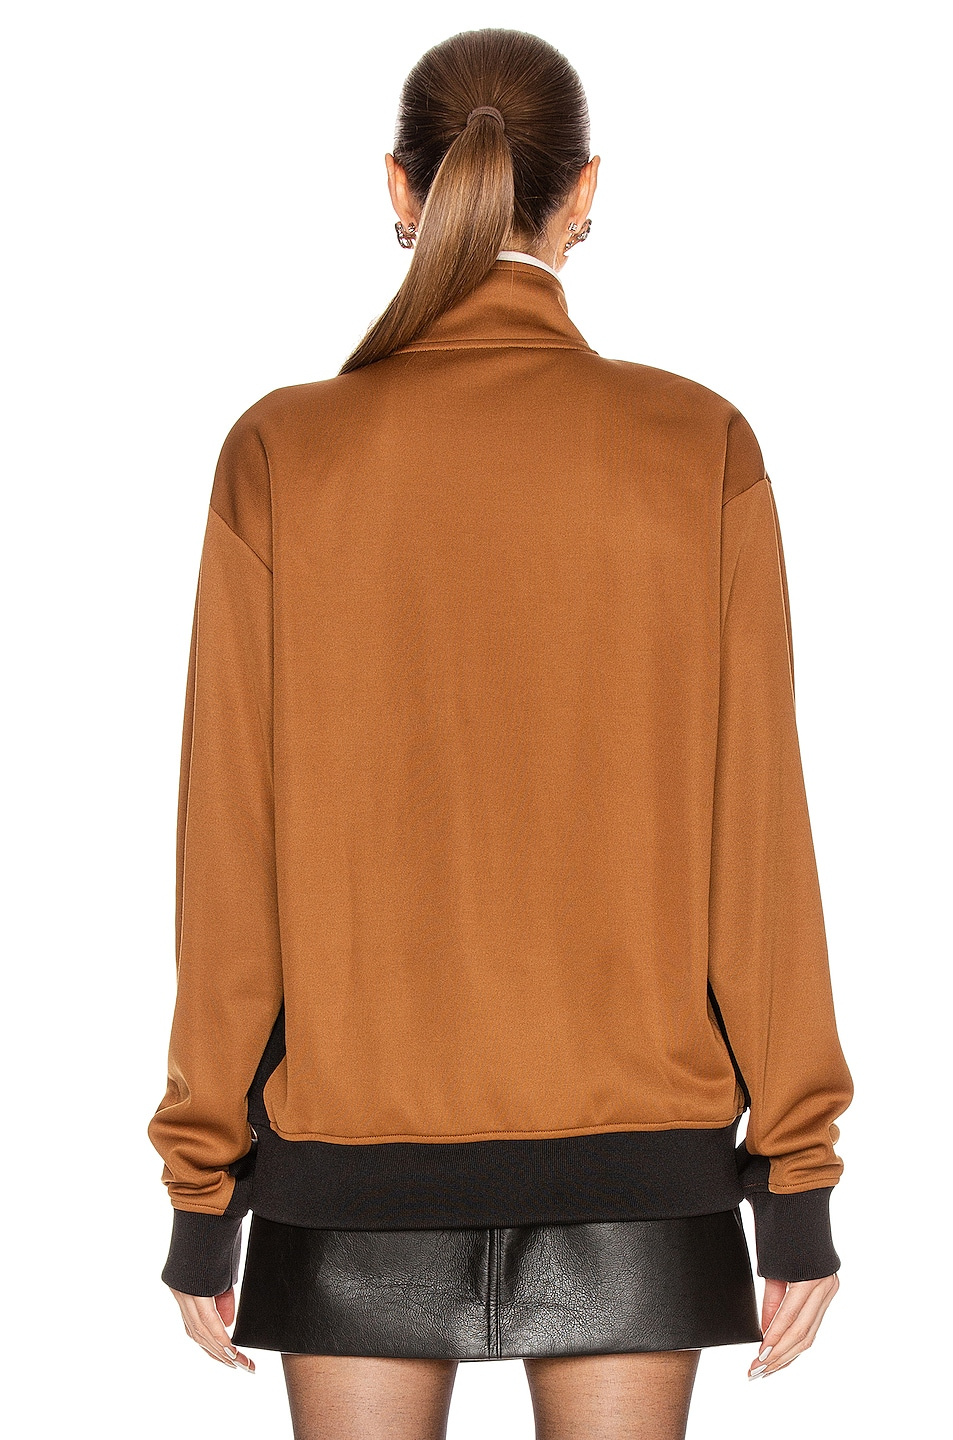 Image 4 of Acne Studios Frescot Face Jacket in Caramel Brown